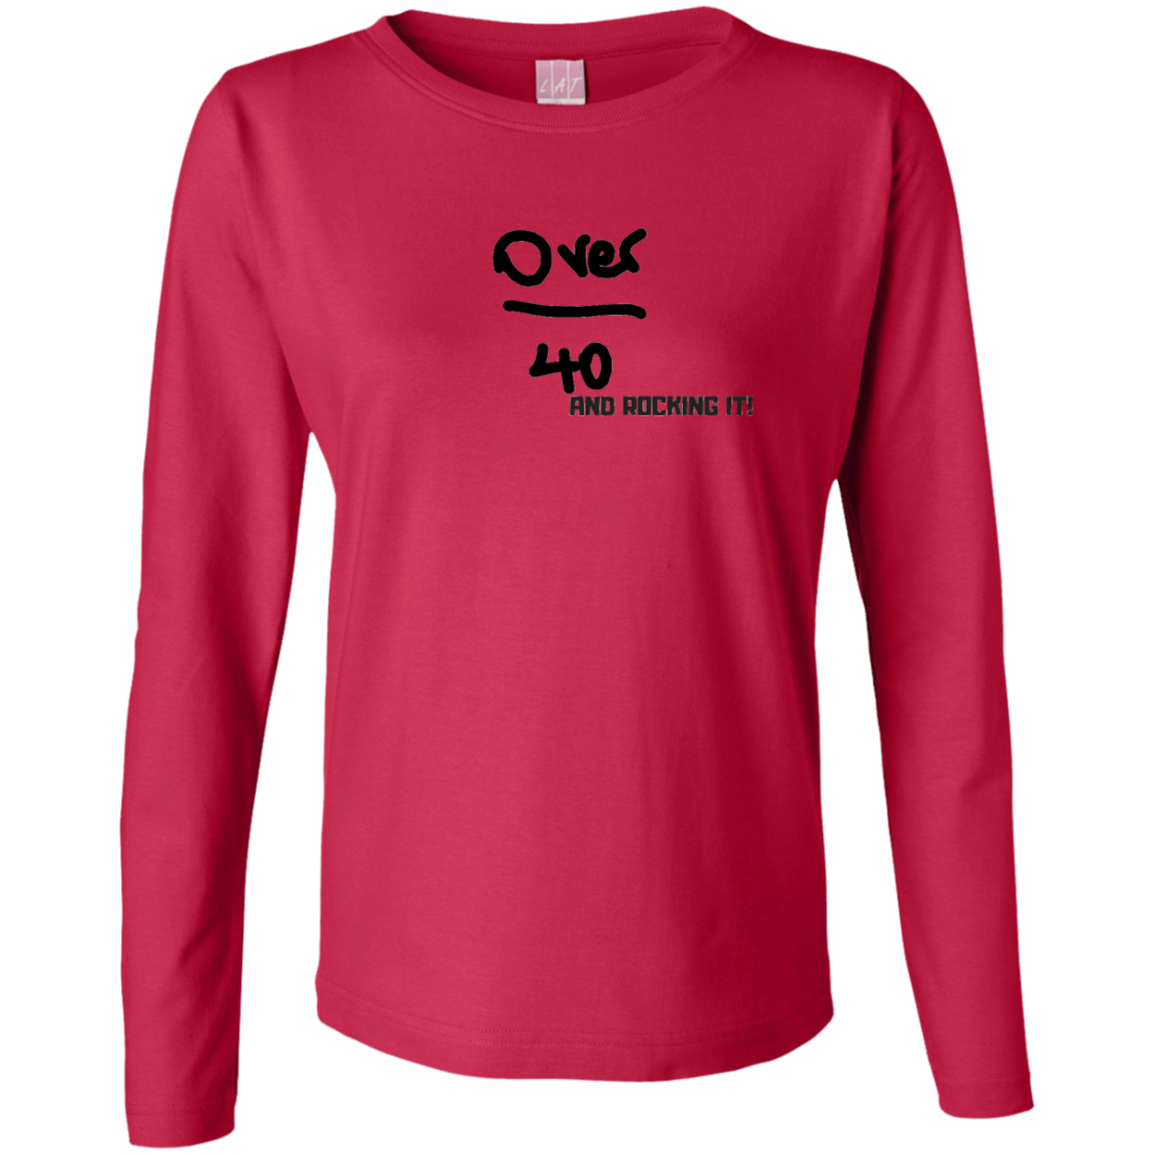 best inspirational shirts for confident midlife women over 40 and over 50